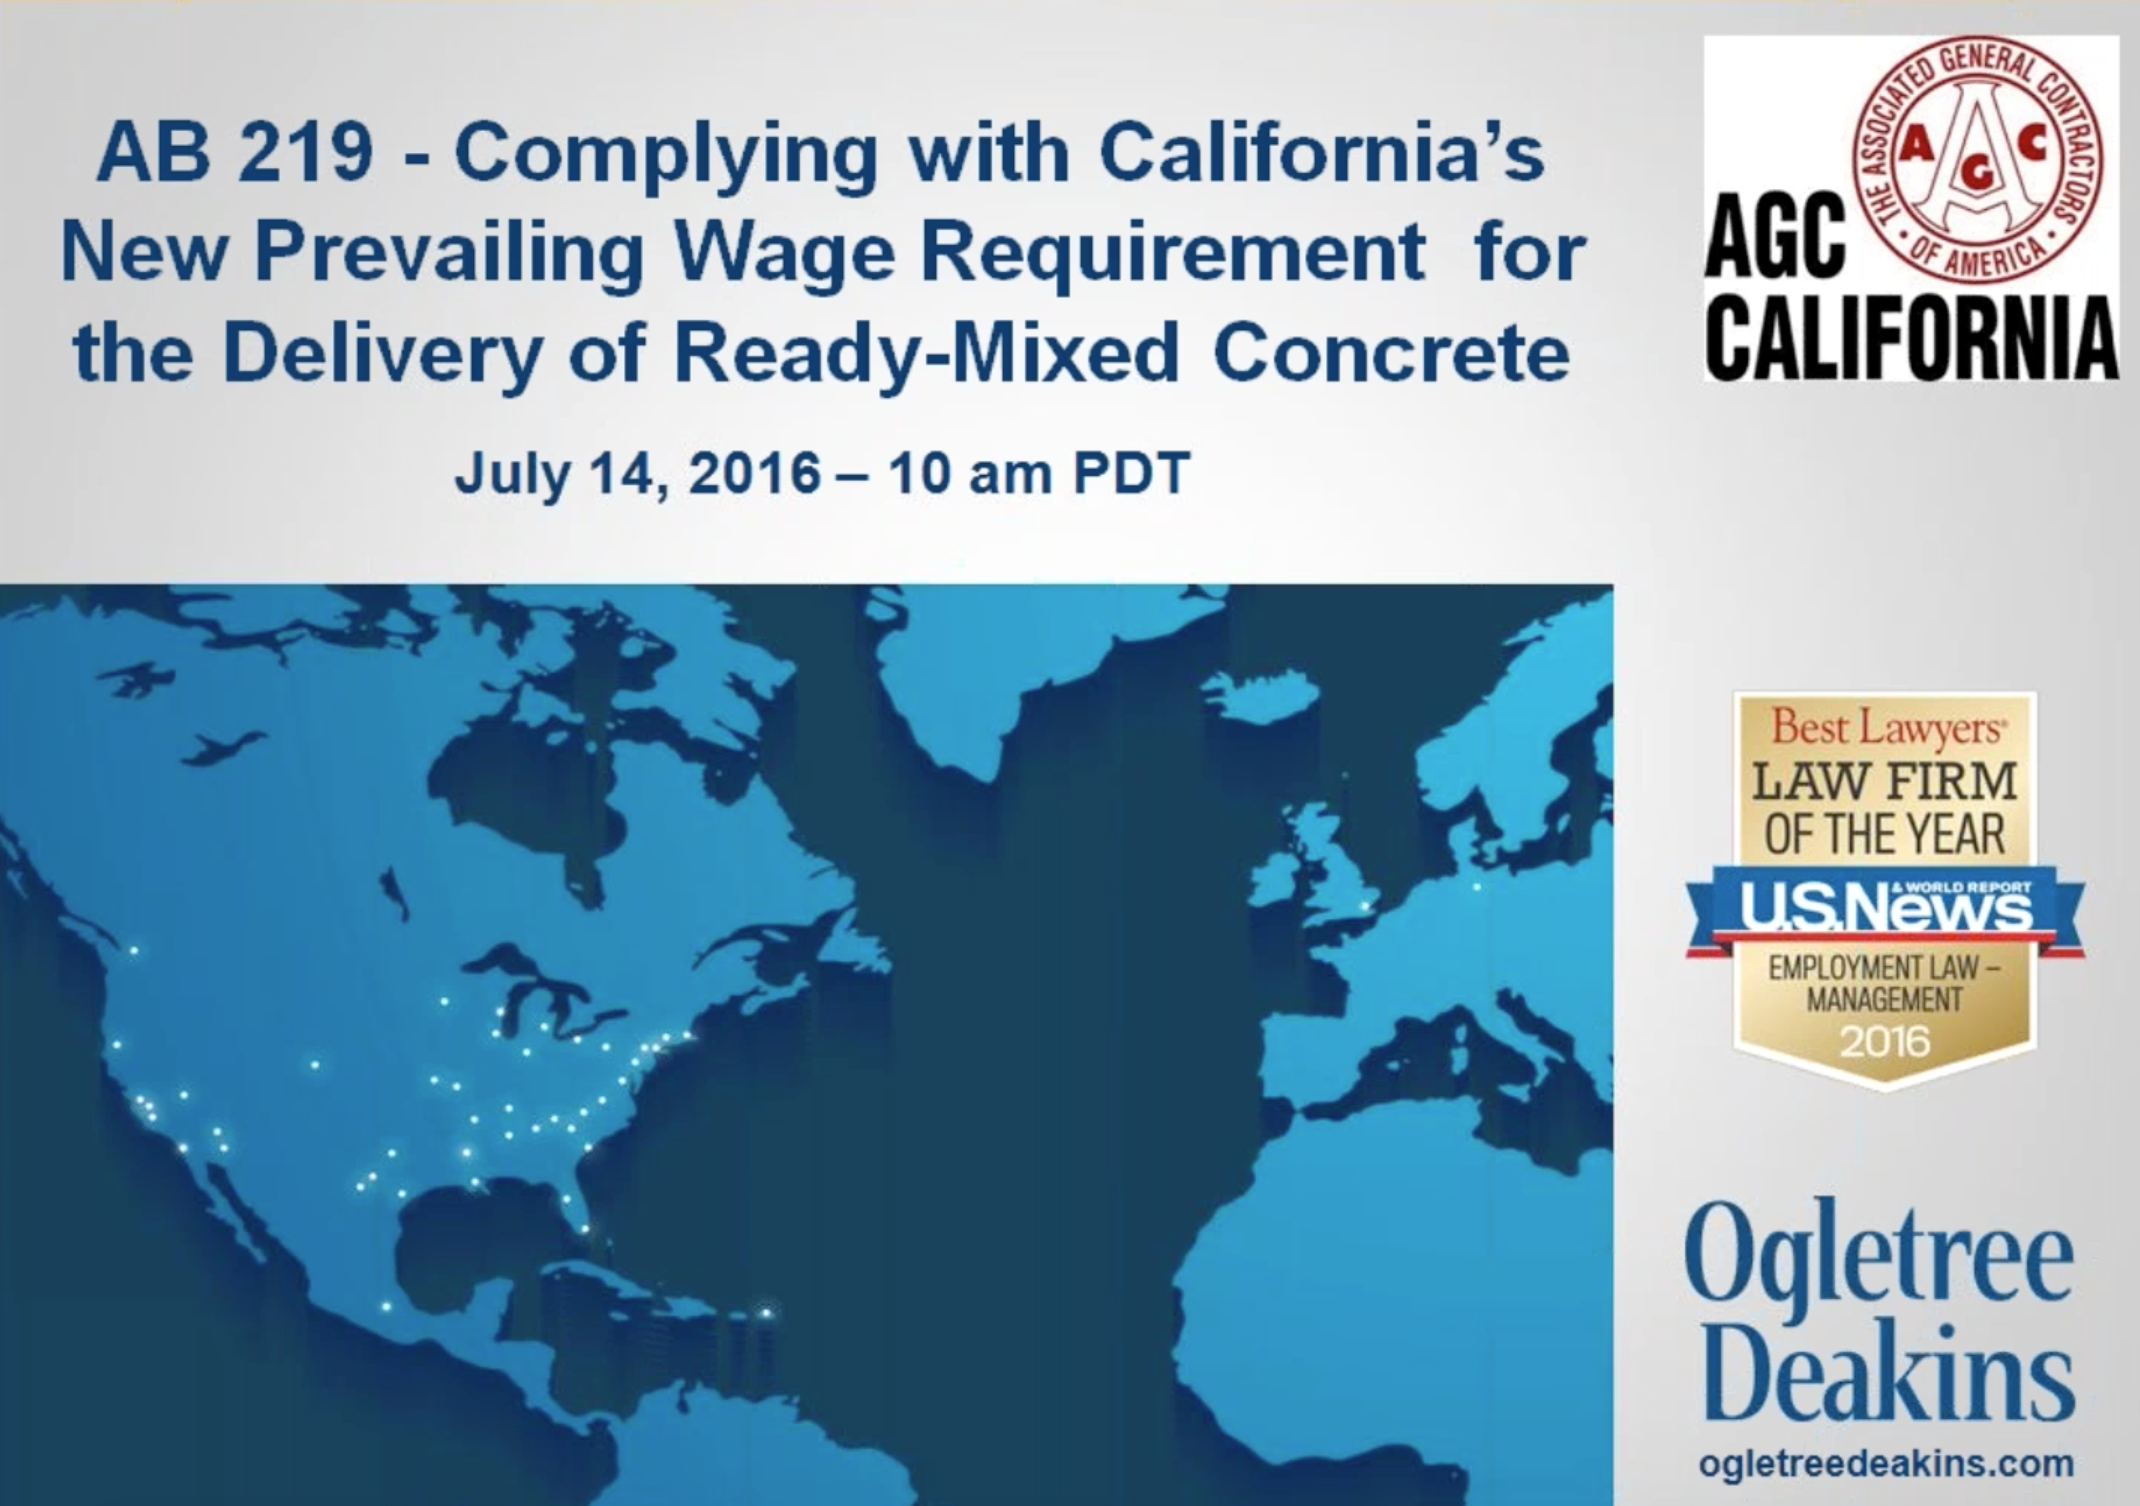 AB 219 - Complying with California's New Prevailing Wage Requirement for the Delivery of Ready-Mixed Concrete